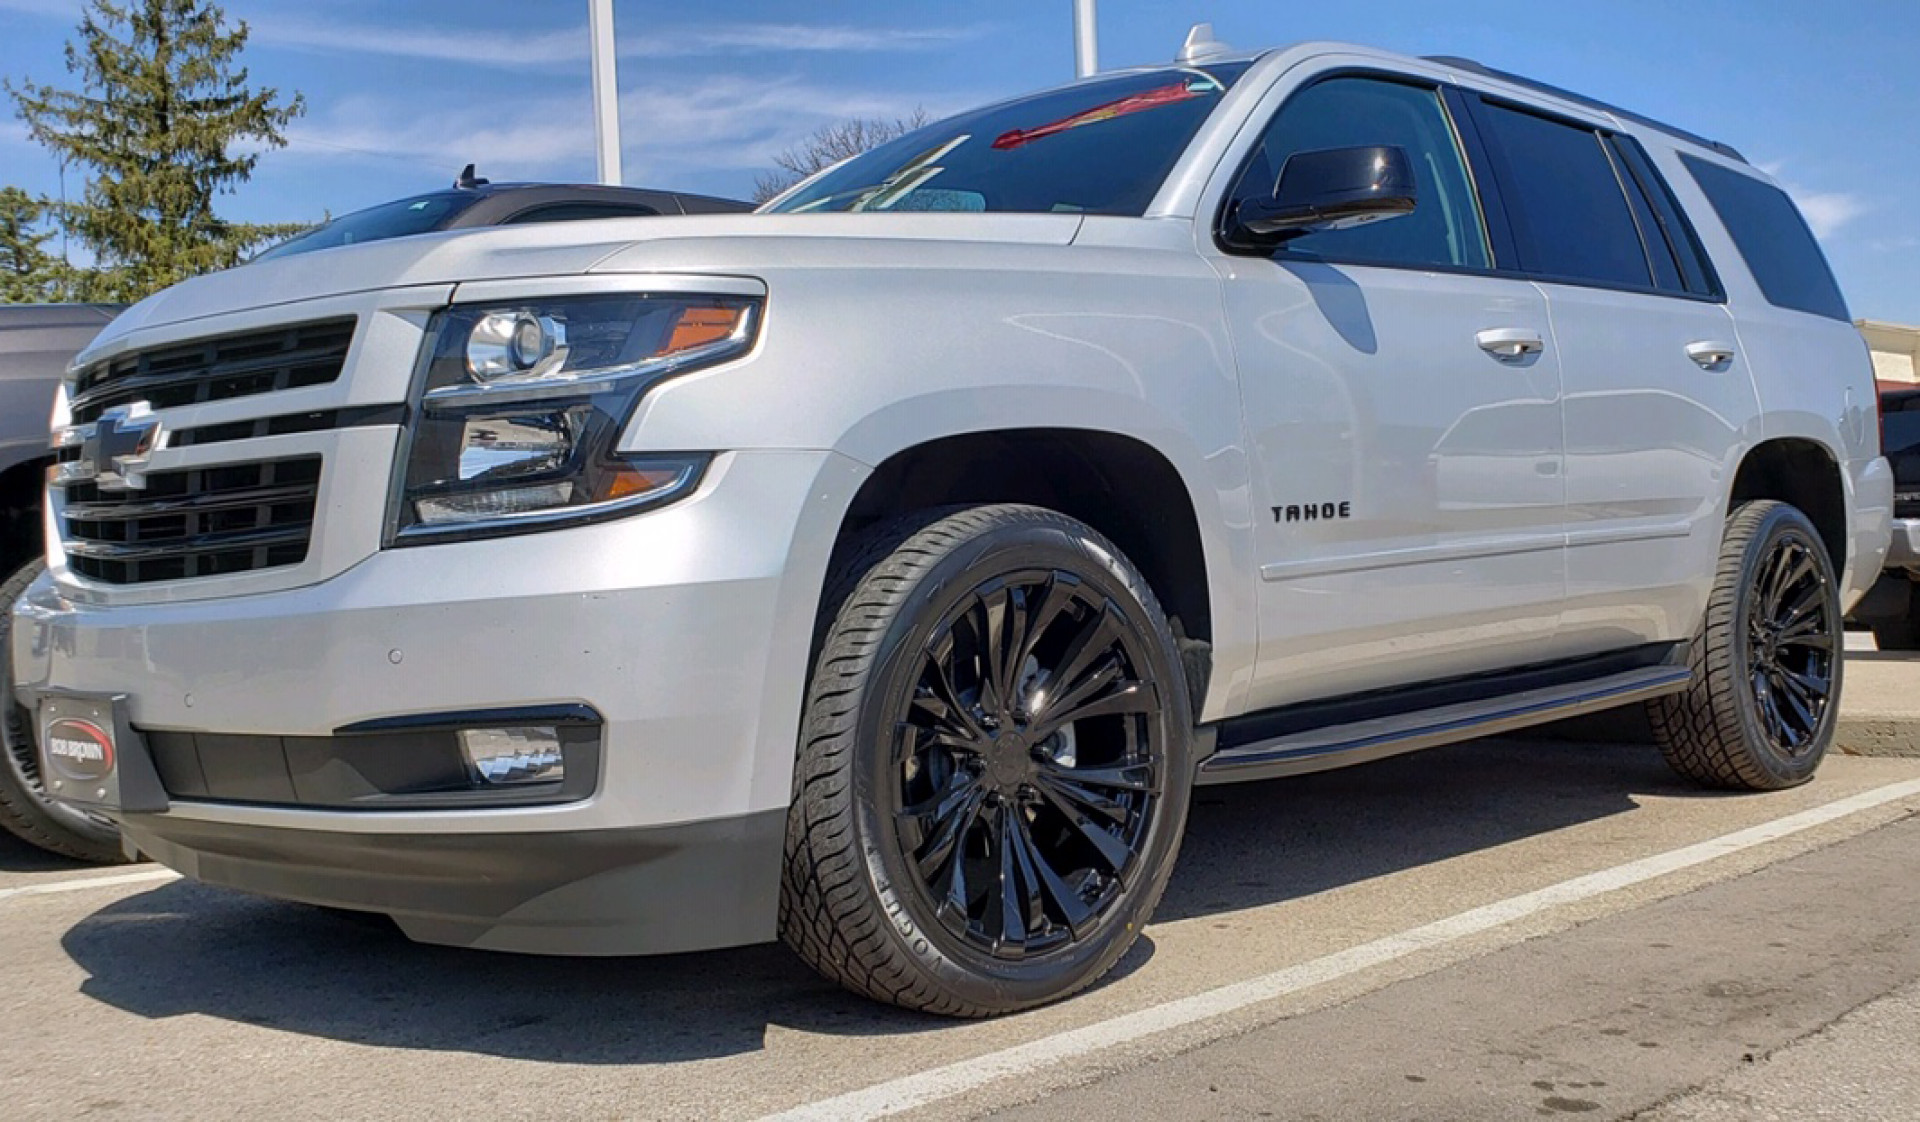 2018 Chevy Tahoe, gloss black Rampage wheels and Sig V's